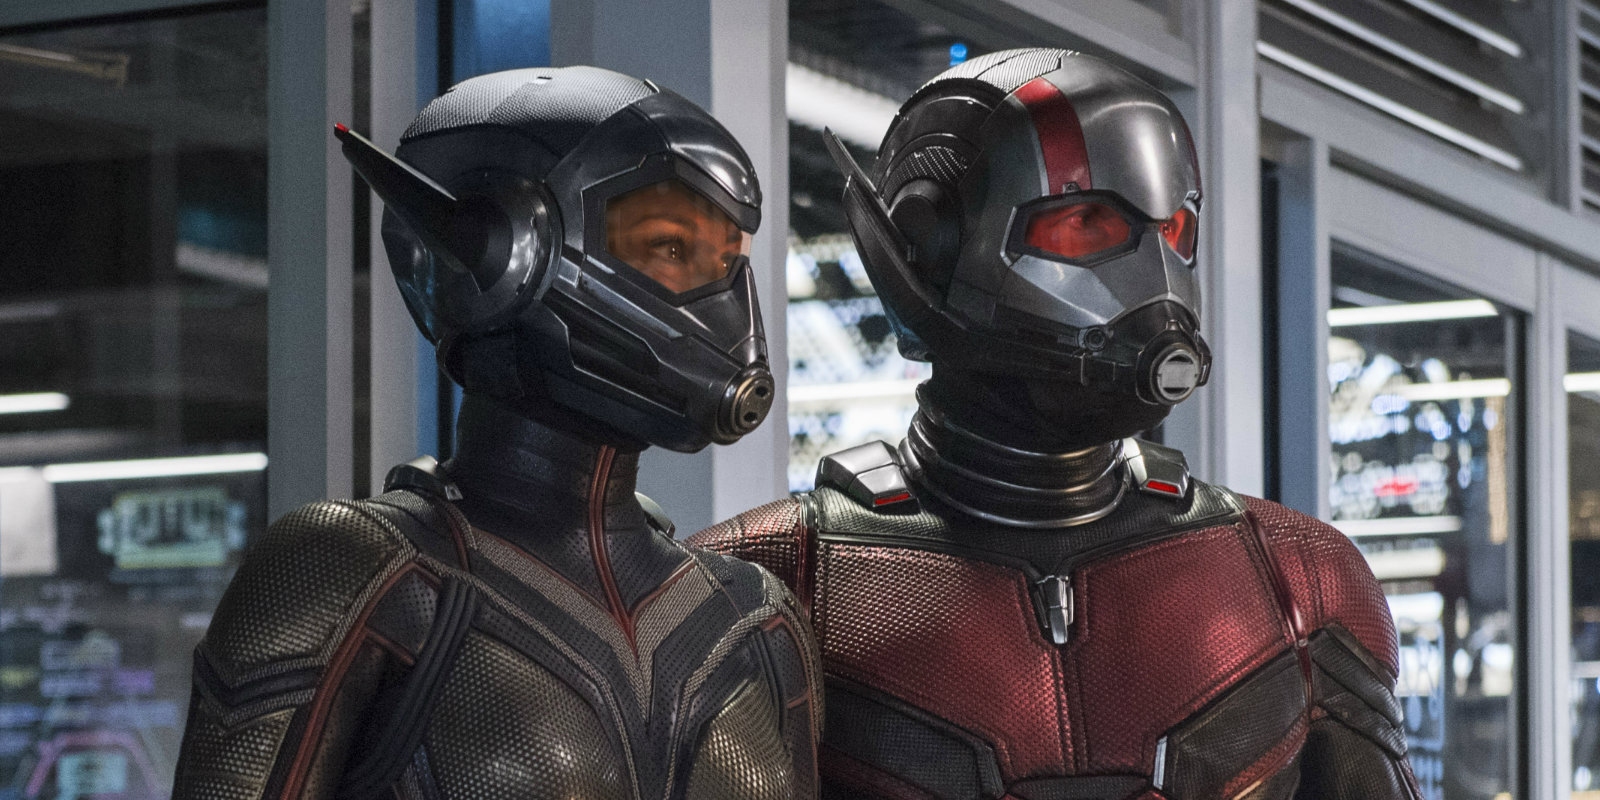 Ant-man and the Wasp release date on Disney+